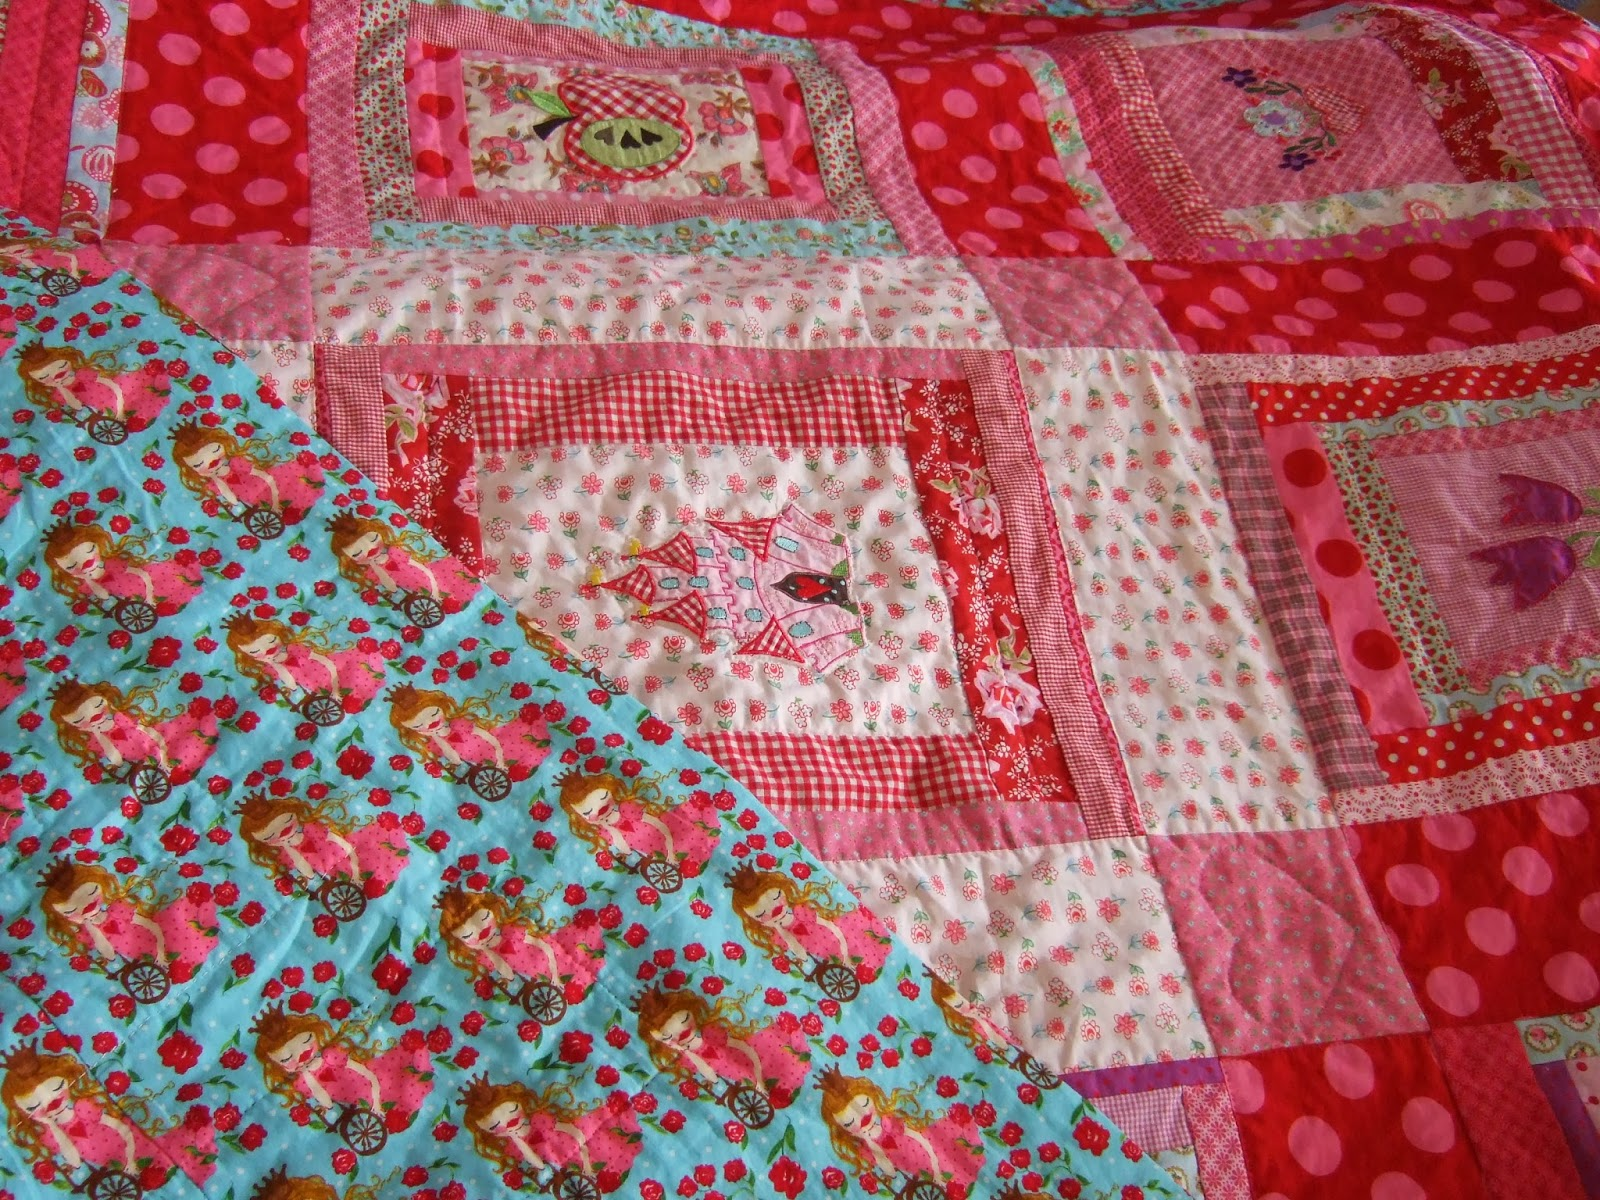 Mimi - Made with Love: Tagesdecke, Quilt, Patchworkdecke, wie auch immer